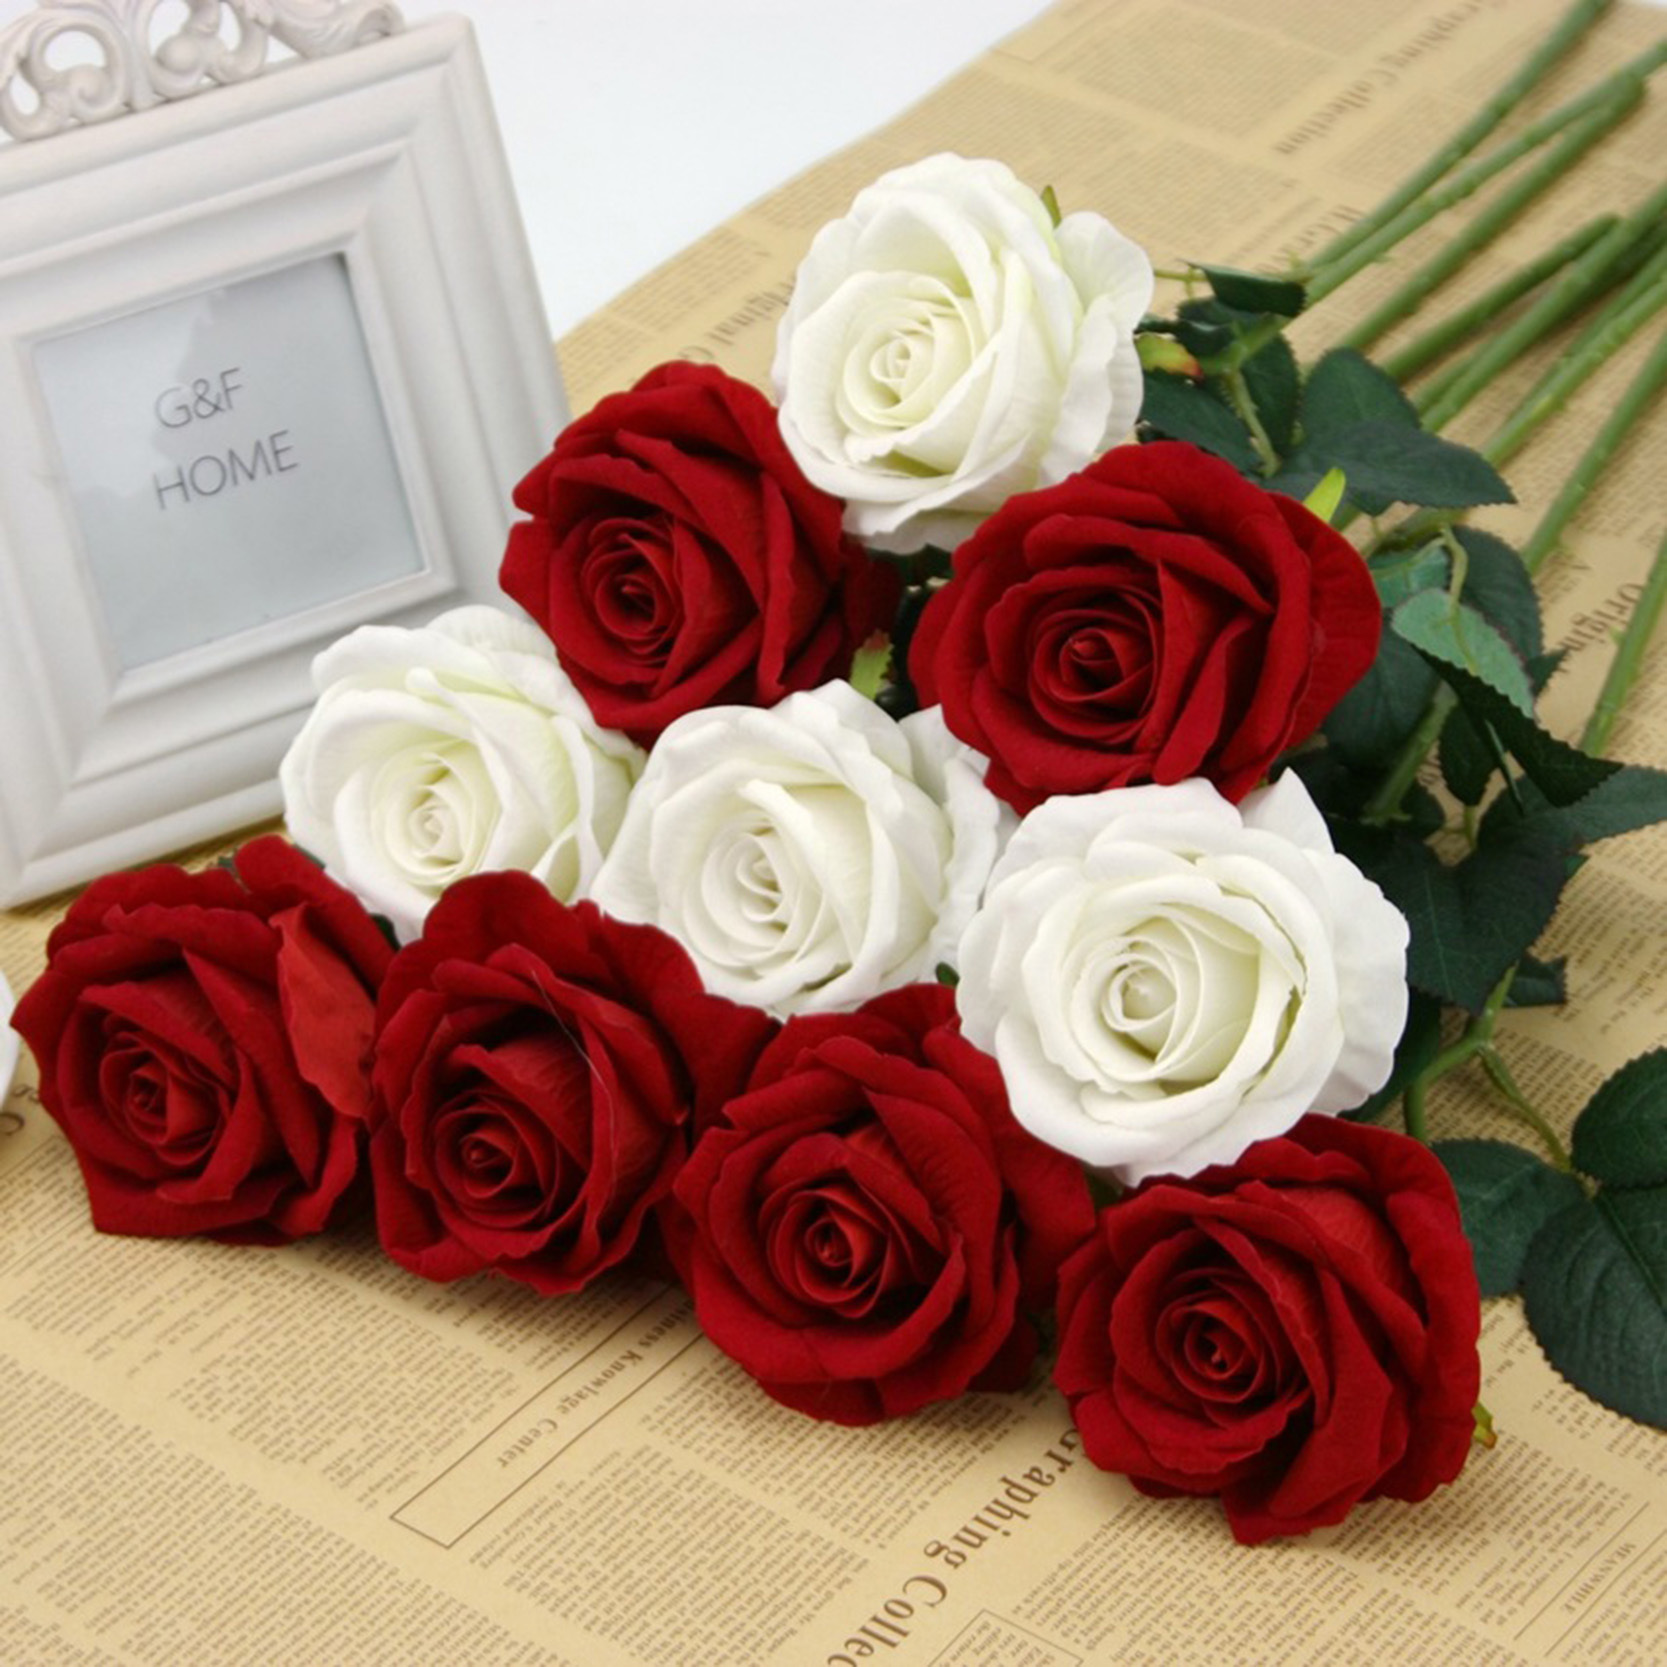 Aliexpress New Multi Color Realistic Fake Flower Arrangement Home Room Decor Rose In Silk Cloth Artificial For Wedding Decoration From